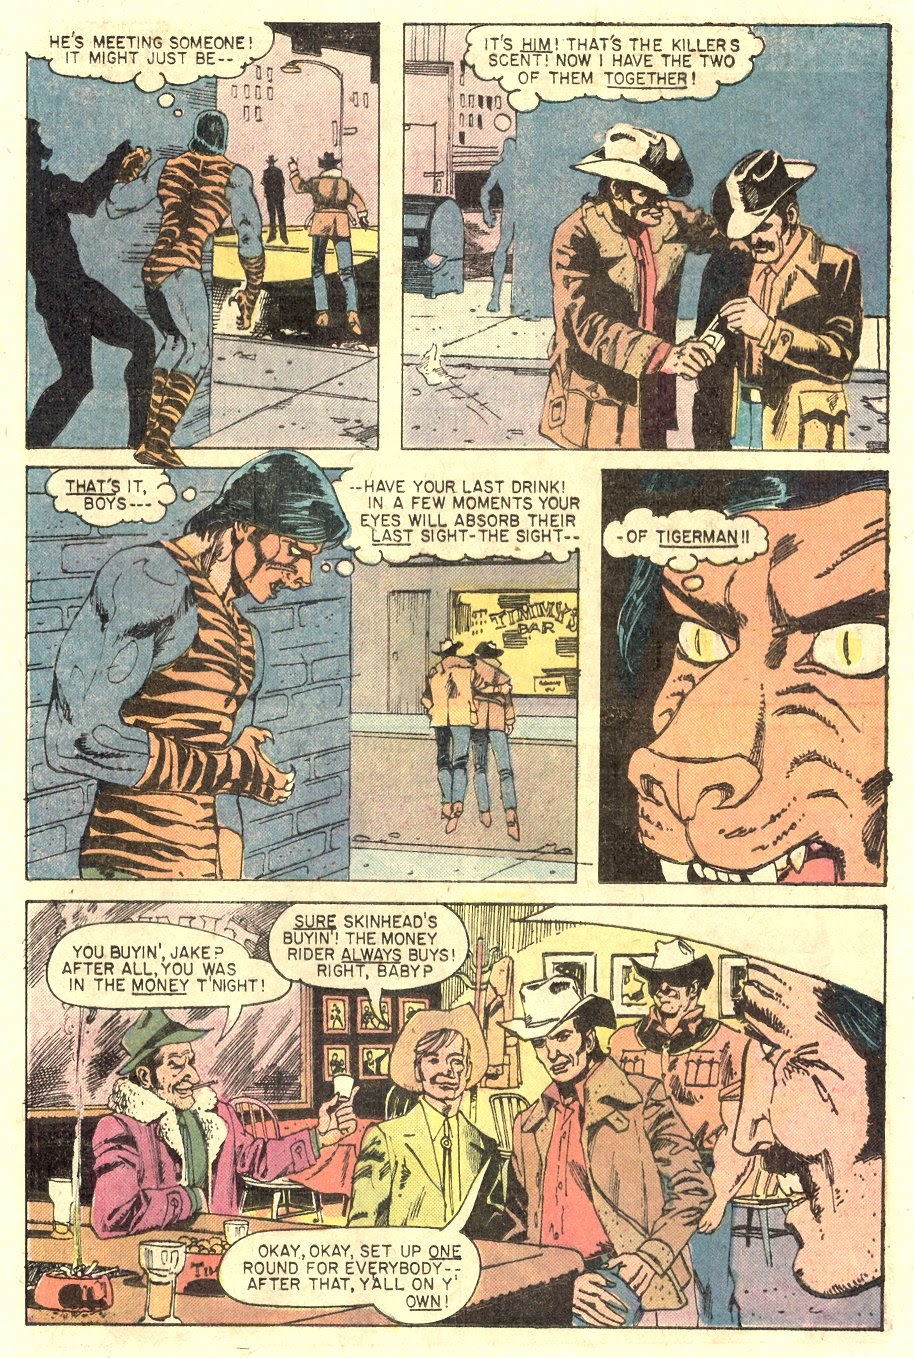 Read online Tiger-Man comic -  Issue #1 - 25